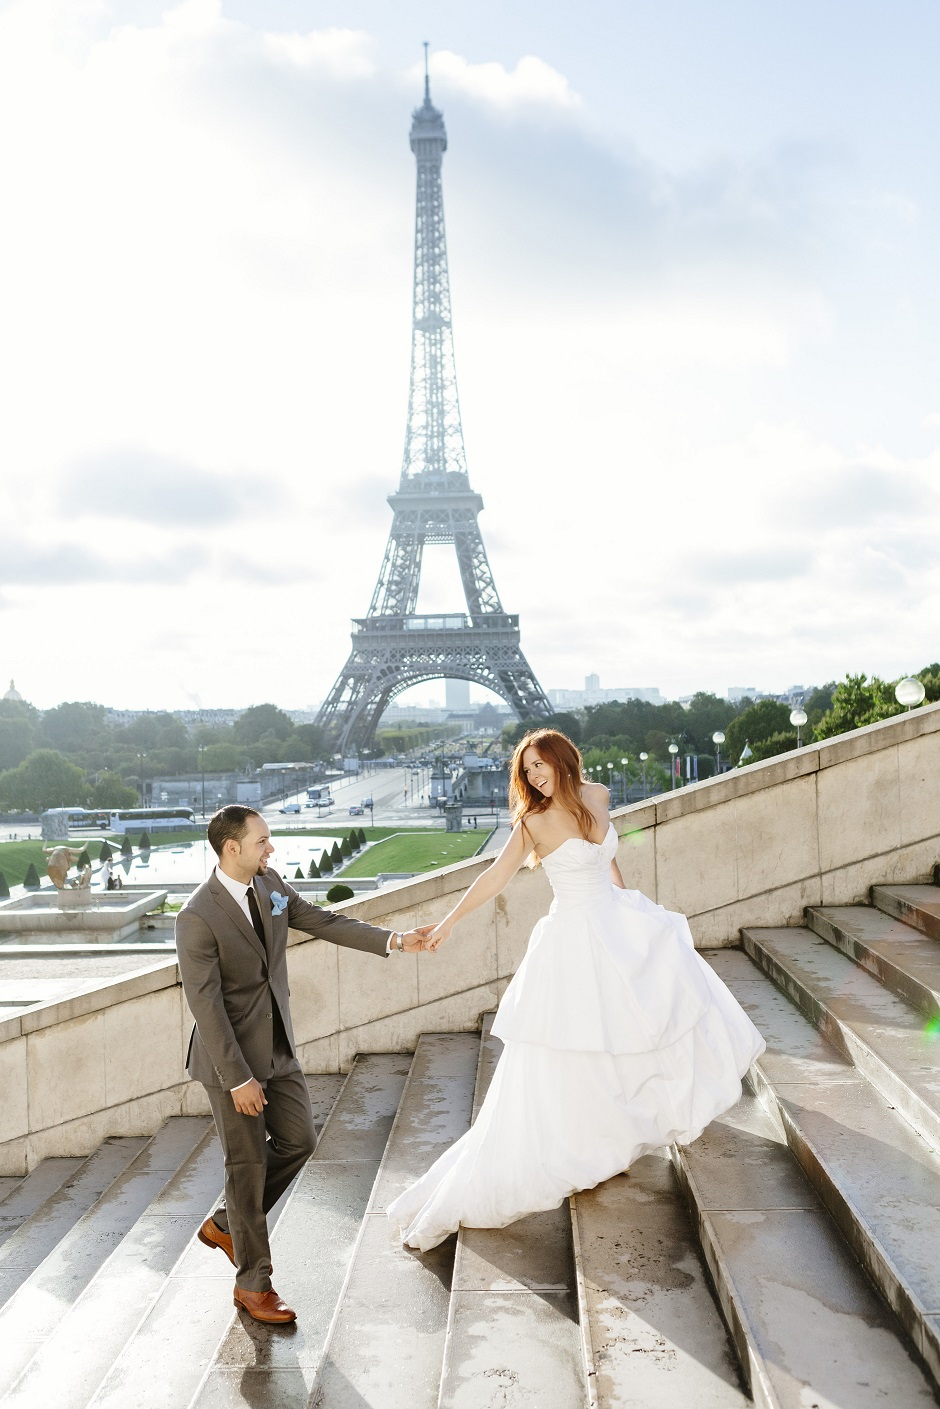 Real bride Emily and Groom TJ walk up the steps in front of the Eiffel Tower.